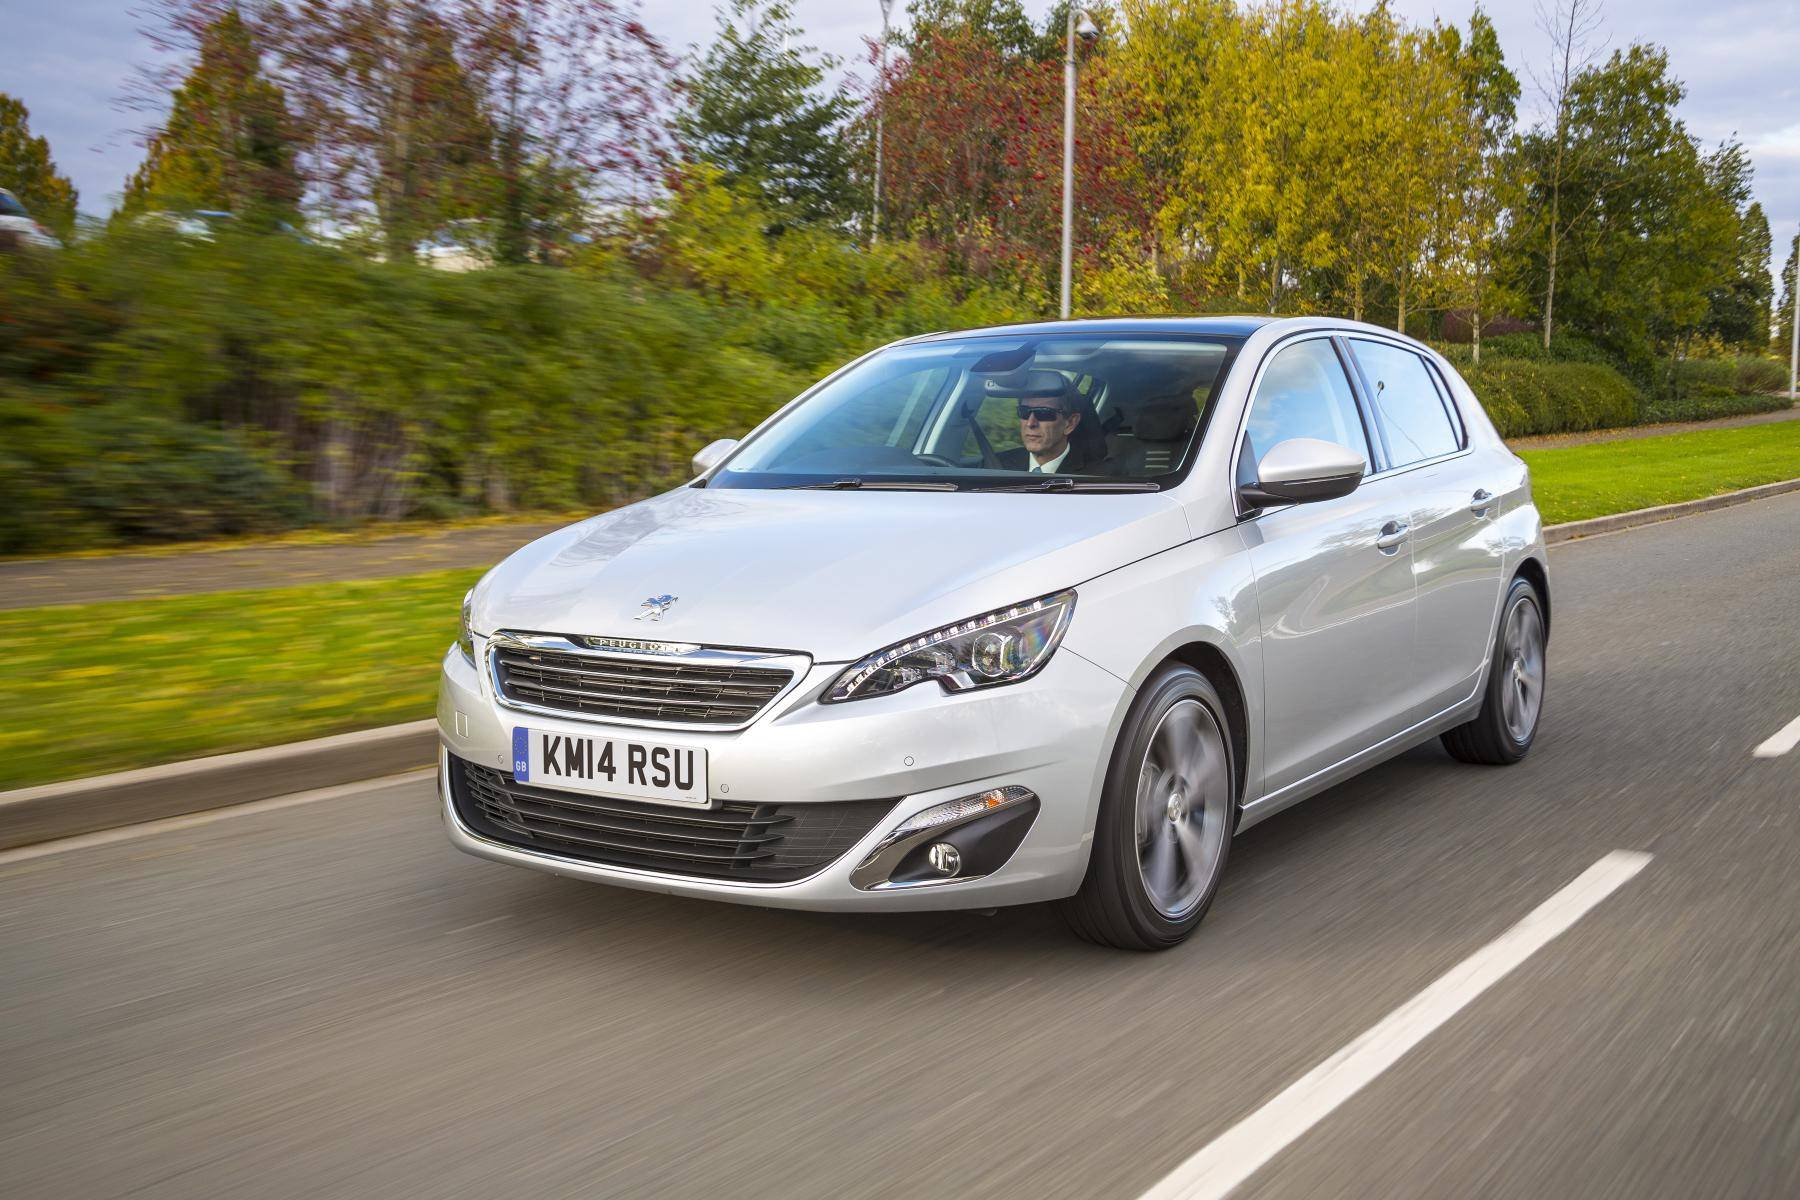 image of a silver peugeot 308 car exterior